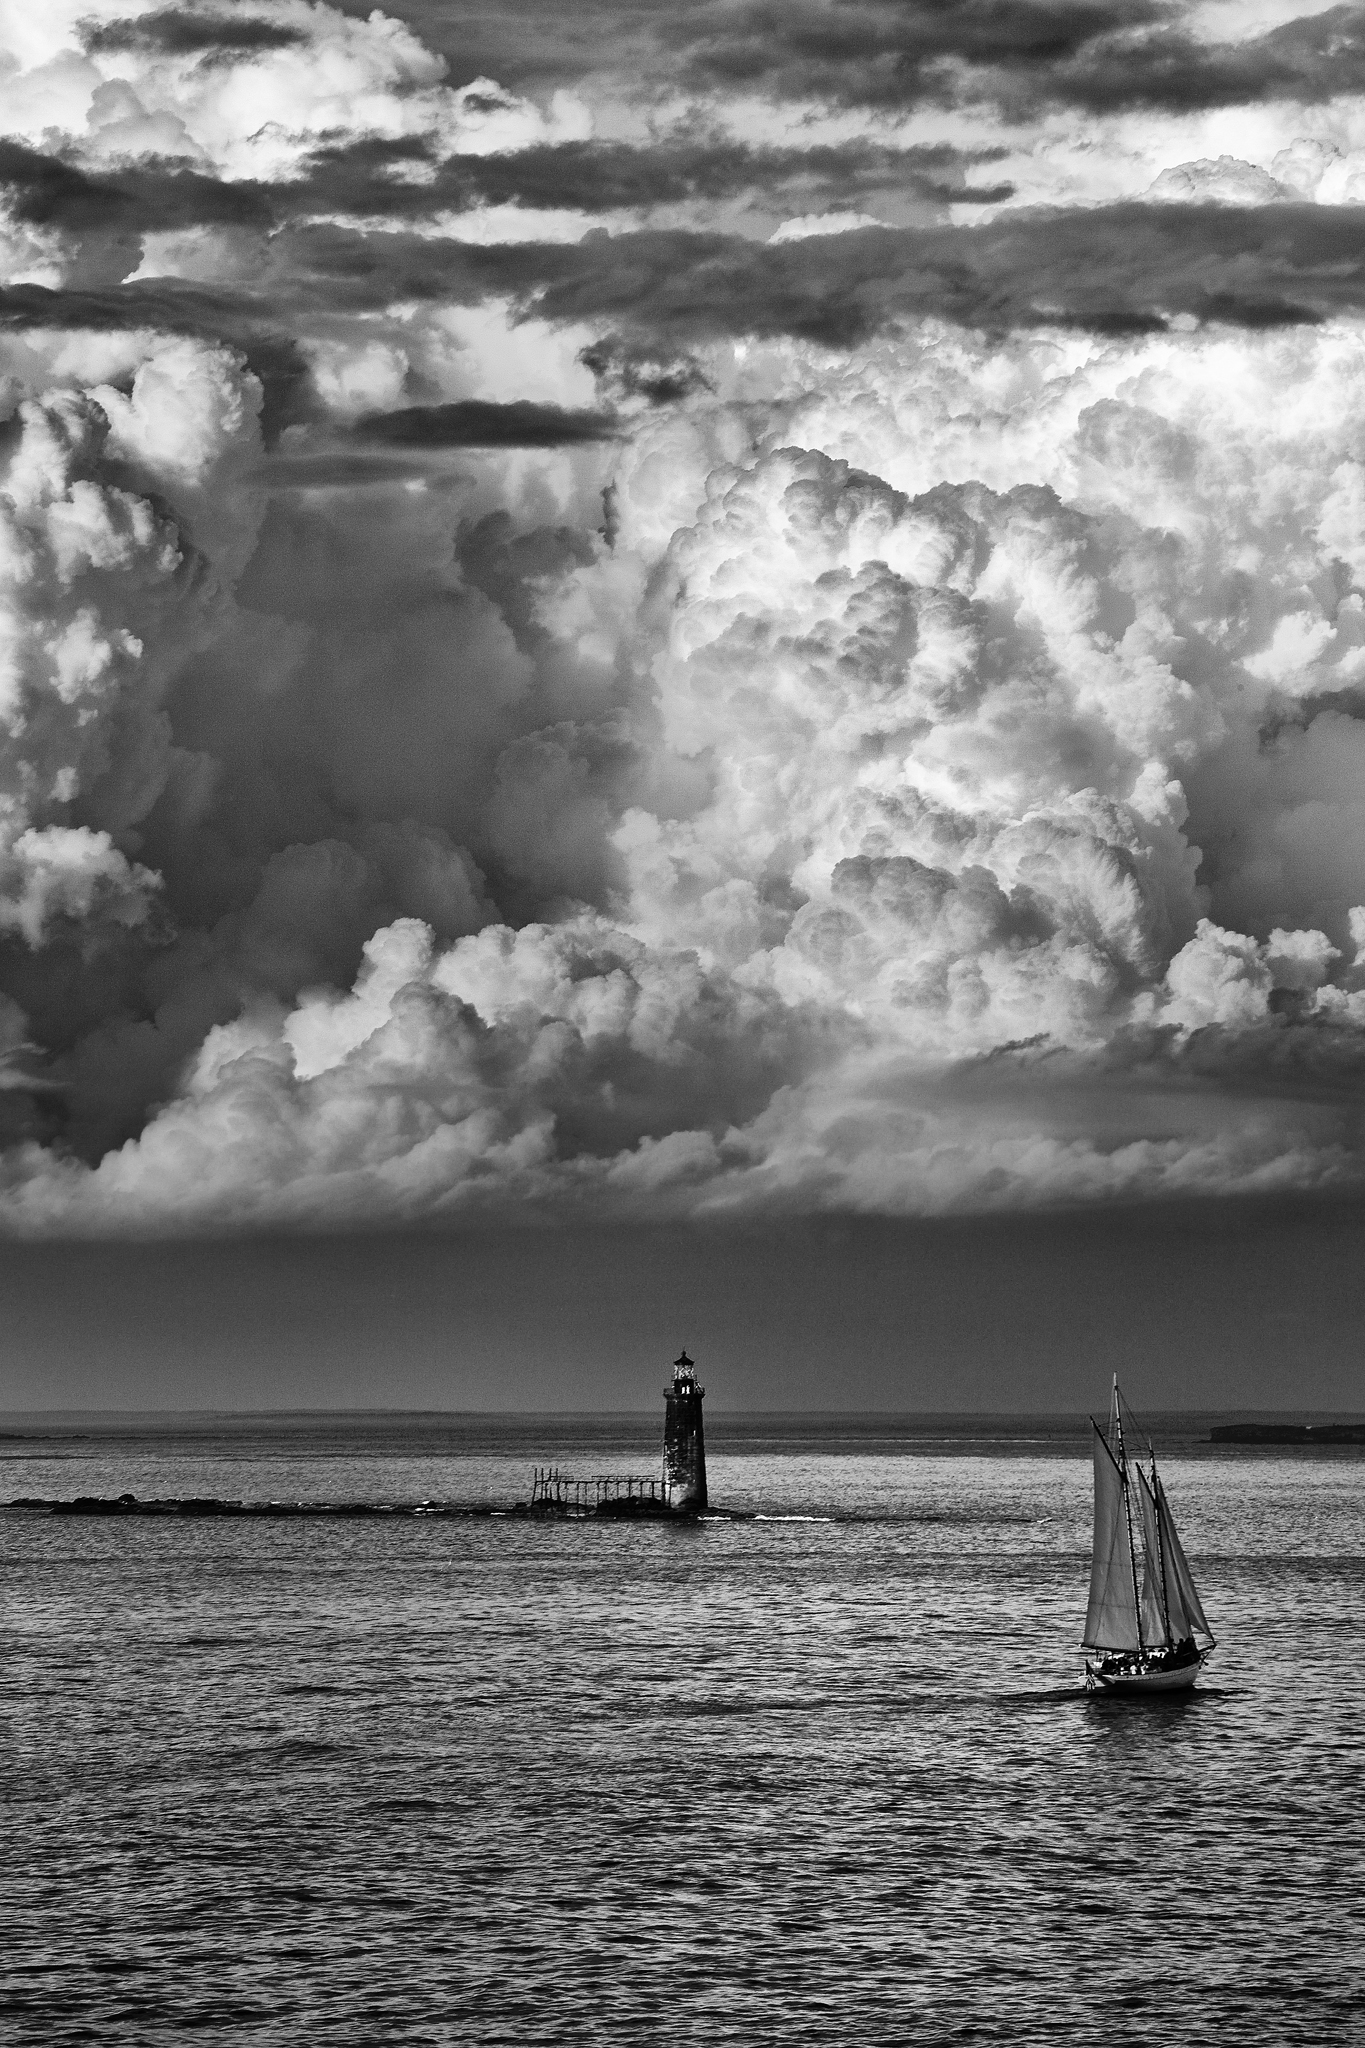 Maine Landscape Photography Workshop Sail boat thunderstorm